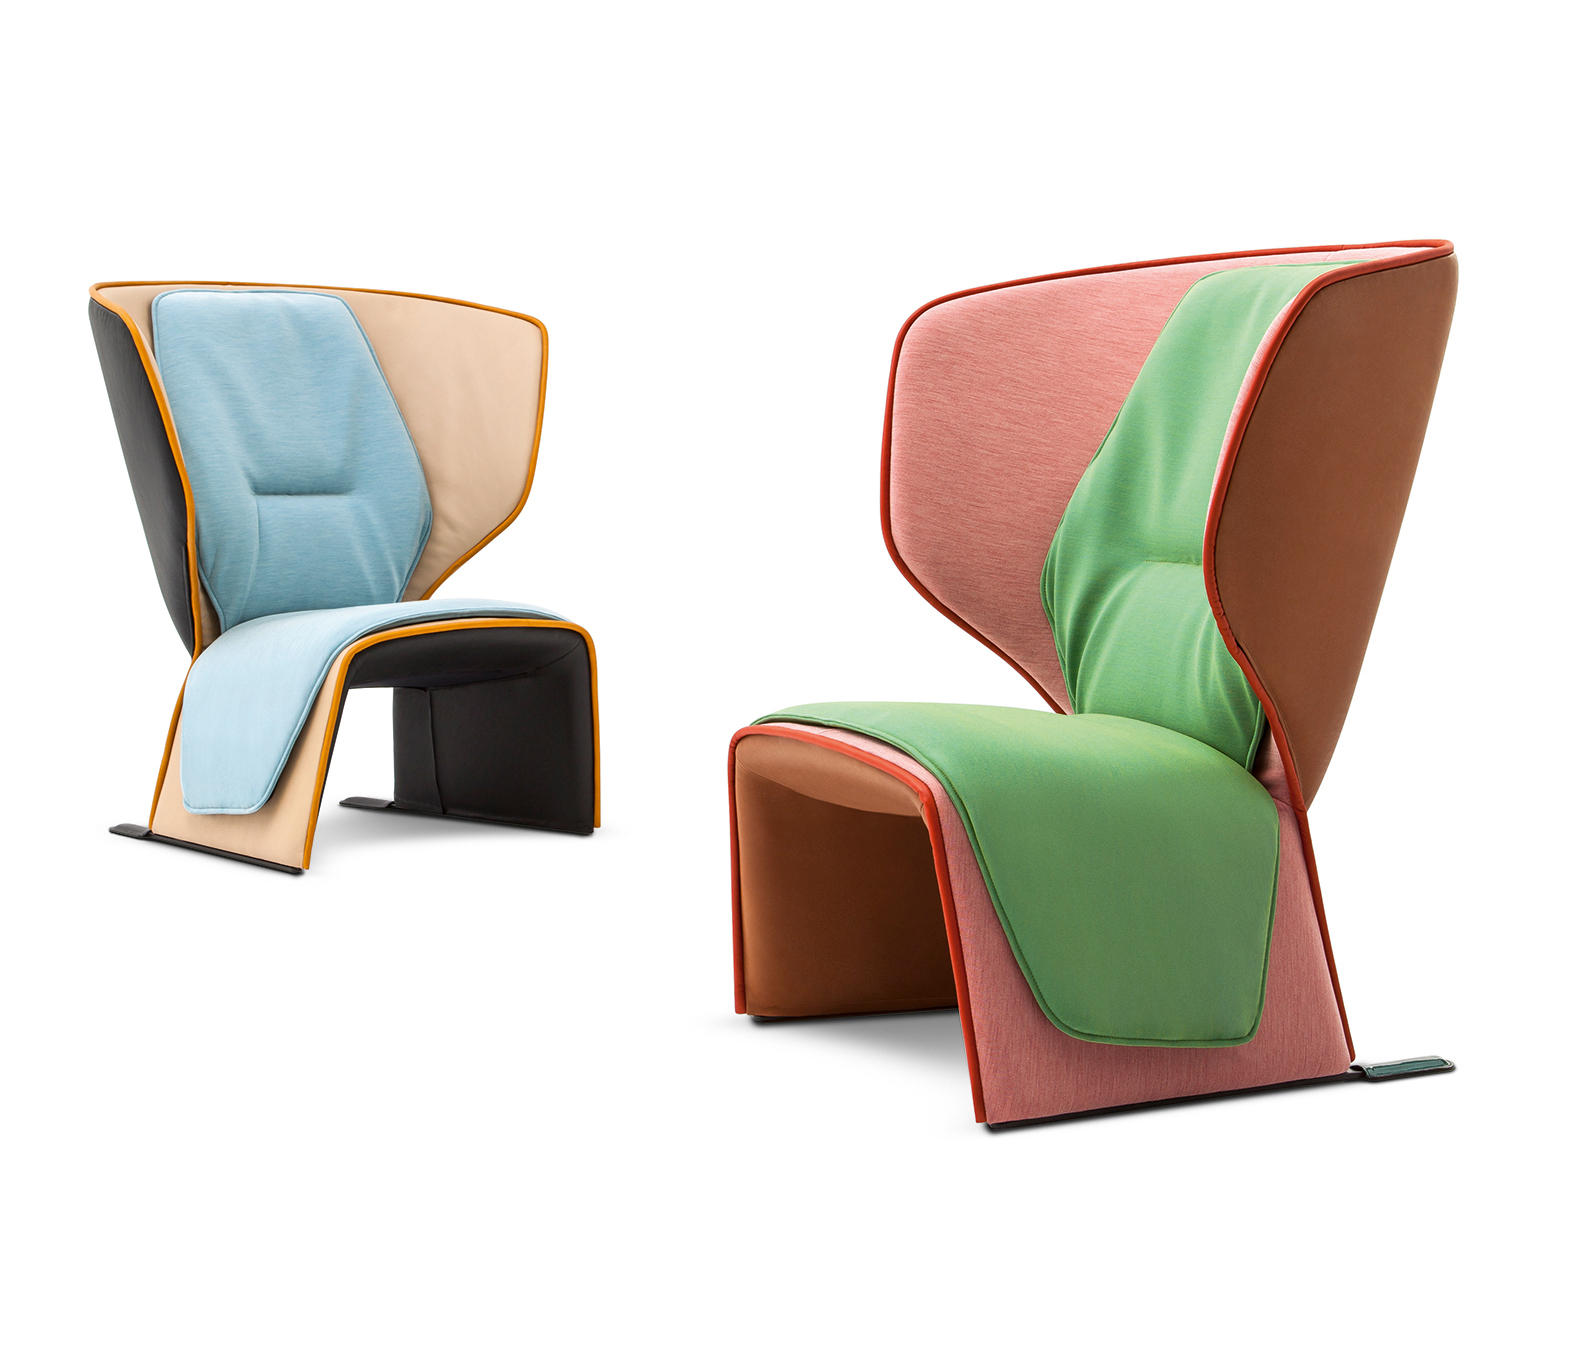 570 Gender Lounge Chairs From Cassina Architonic